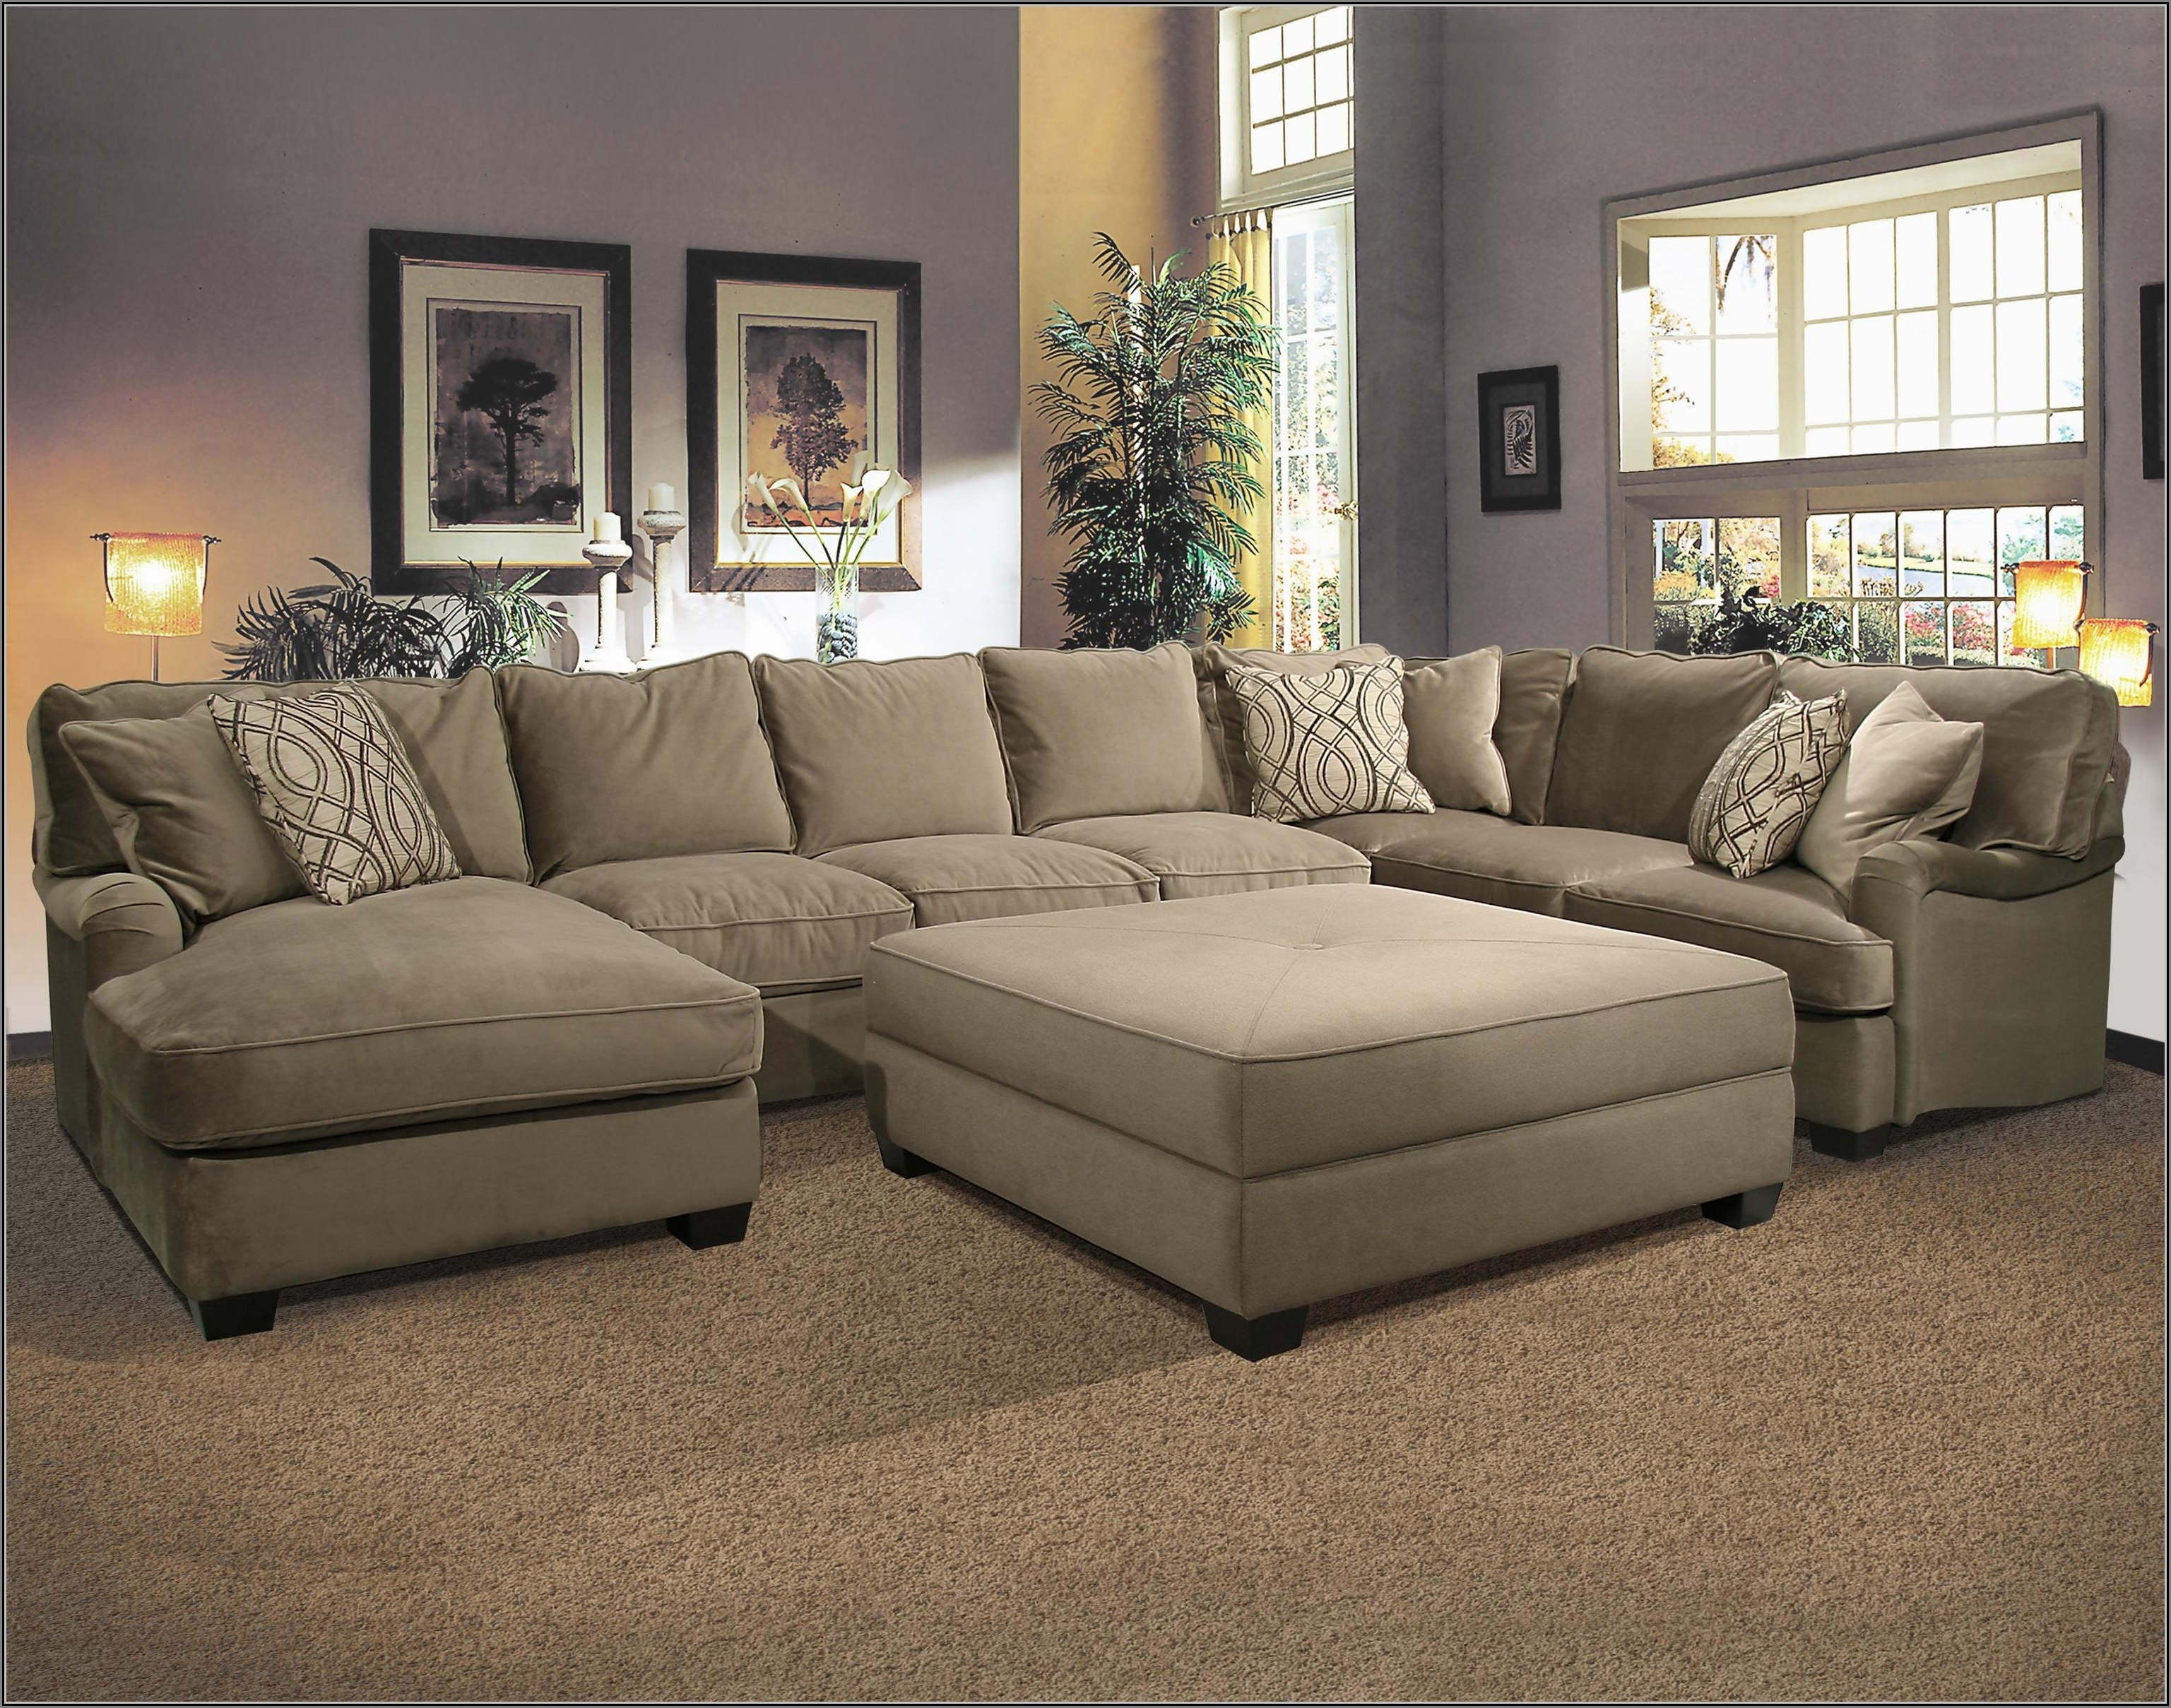 Sectional Sleeper Sofas With Ottoman Within Famous Epic Large Fabric Sectional Sofas 21 On 3 Piece Sectional Sleeper (View 18 of 20)